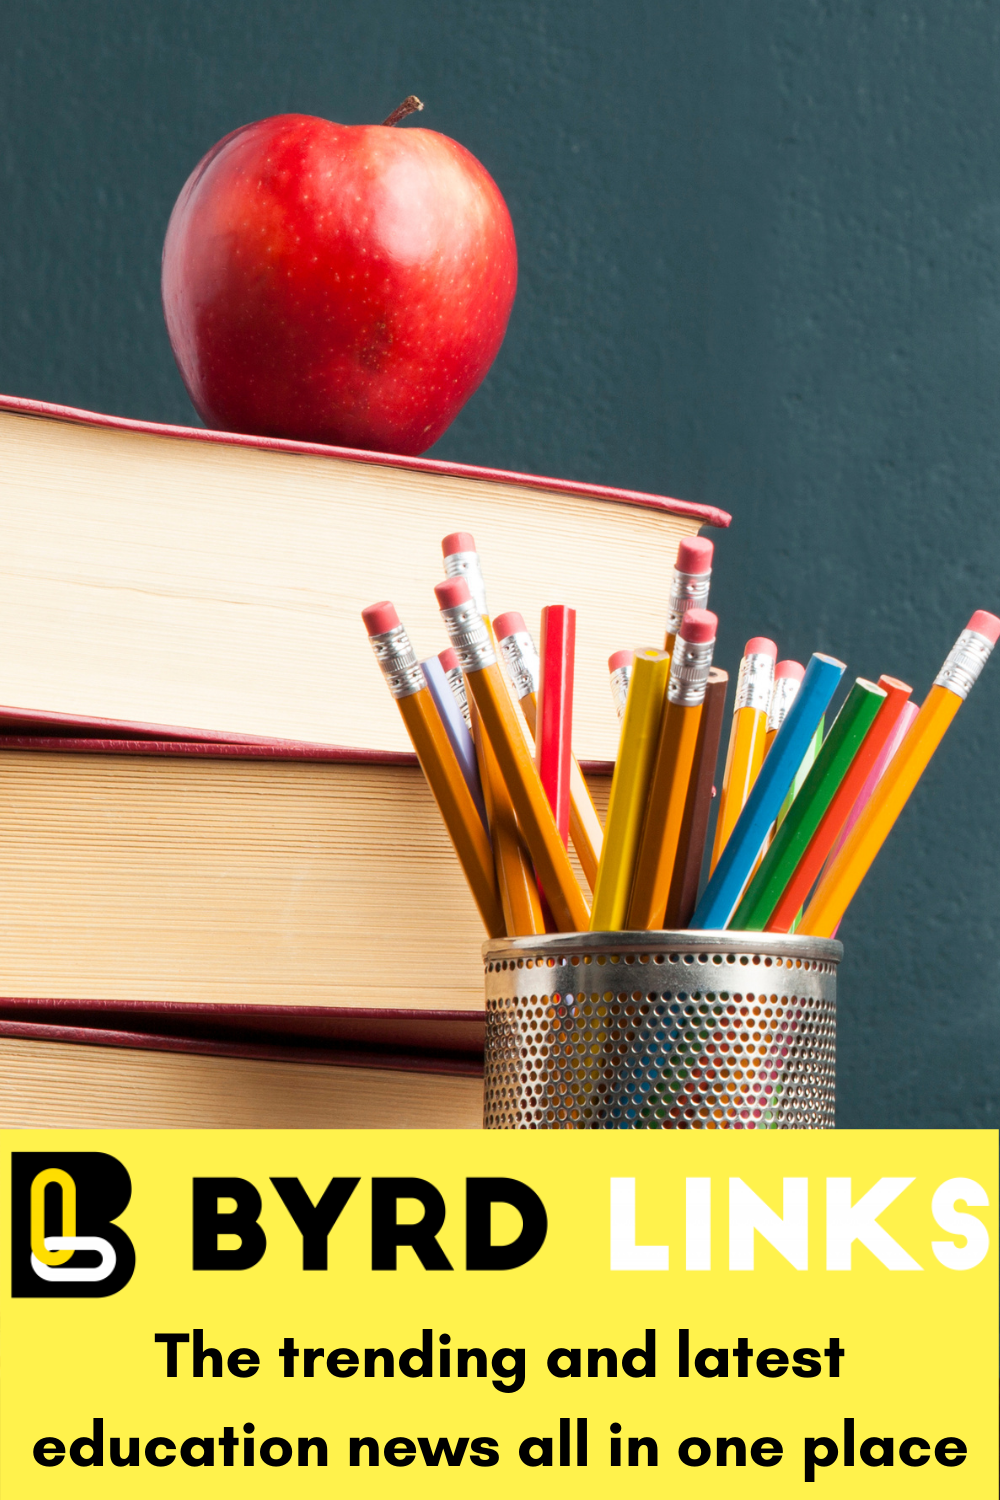 Get the trending and latest education news at Byrd Links.